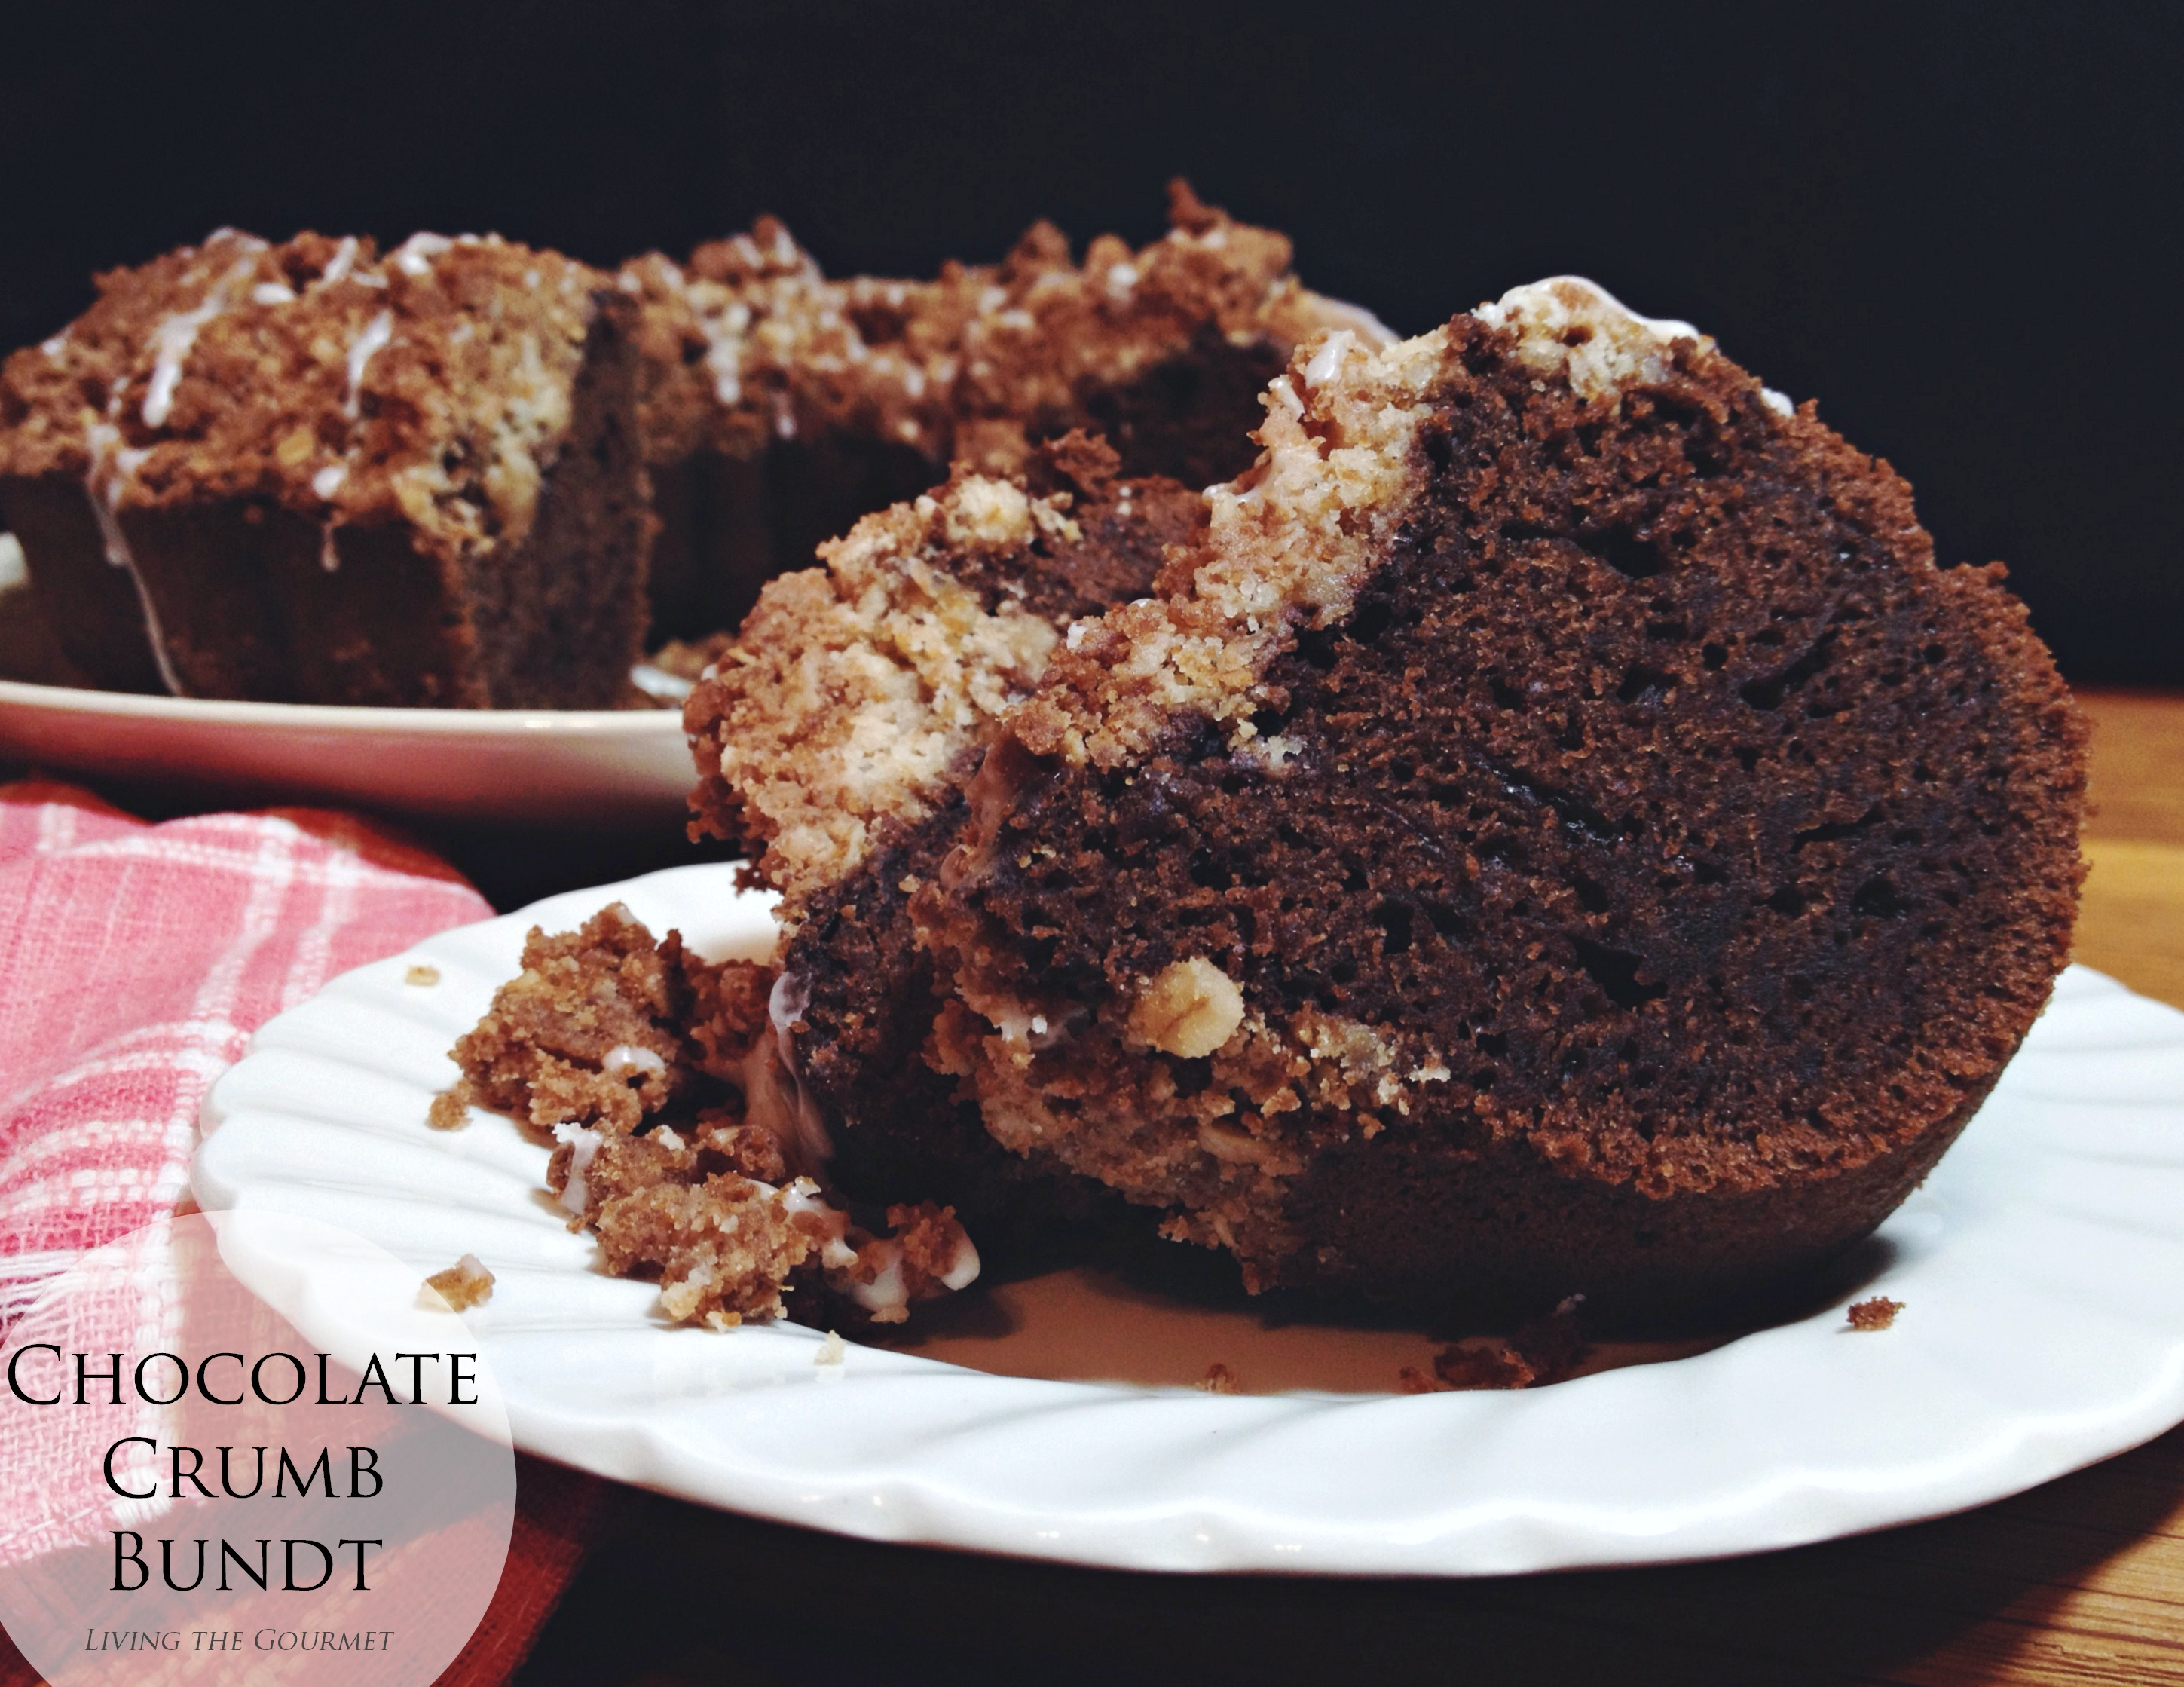 Chocolate Crumb Bundt #BundtBakers - Living The Gourmet